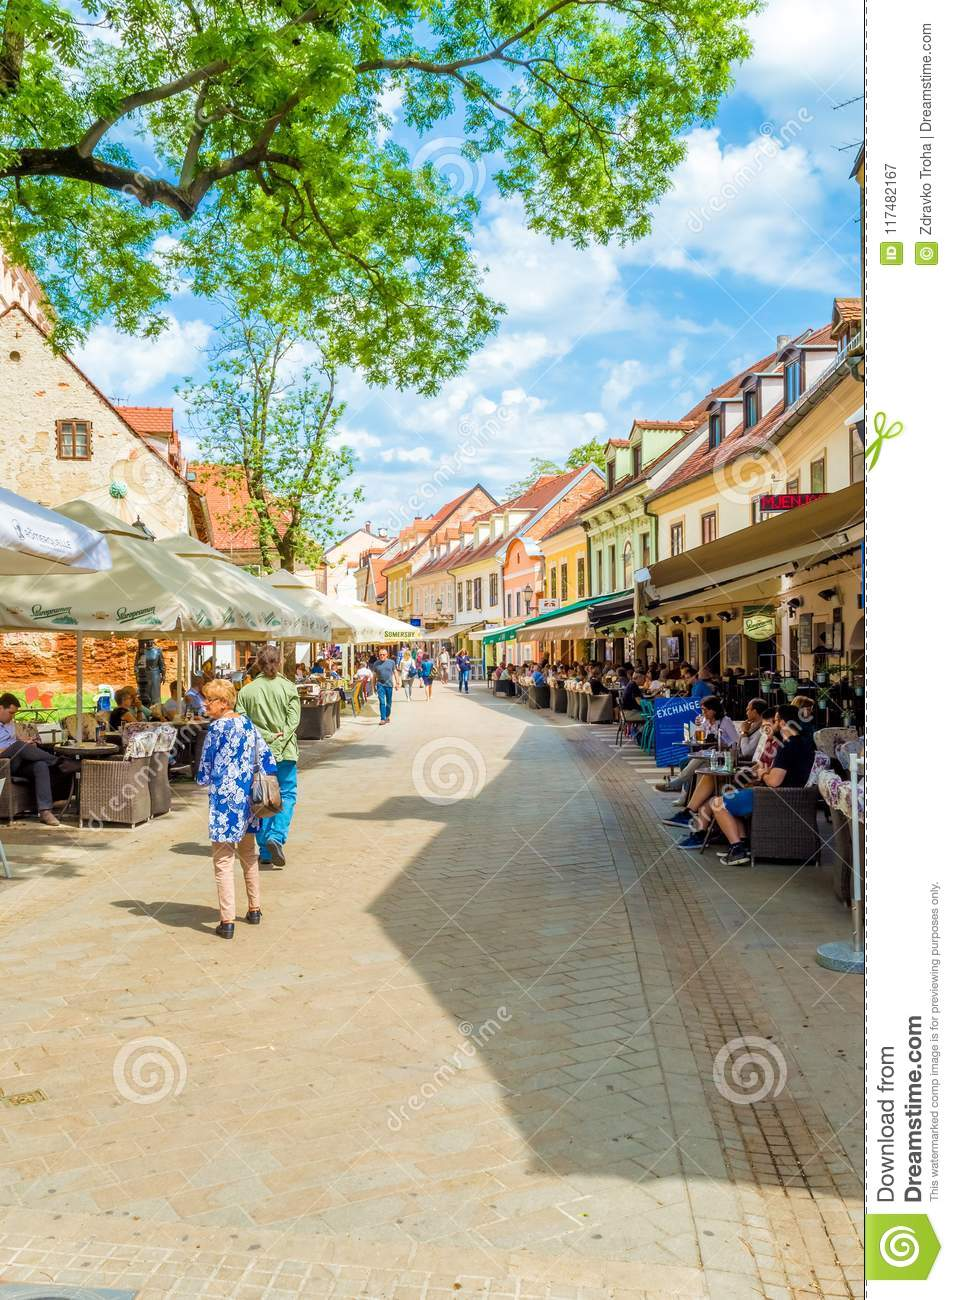 People Visit Tkalciceva Street It Is A Pedestrian Zone In Zagreb Downtown Lined With Restaurants And Cafes Editorial Photography Image Of Church Center 117482167